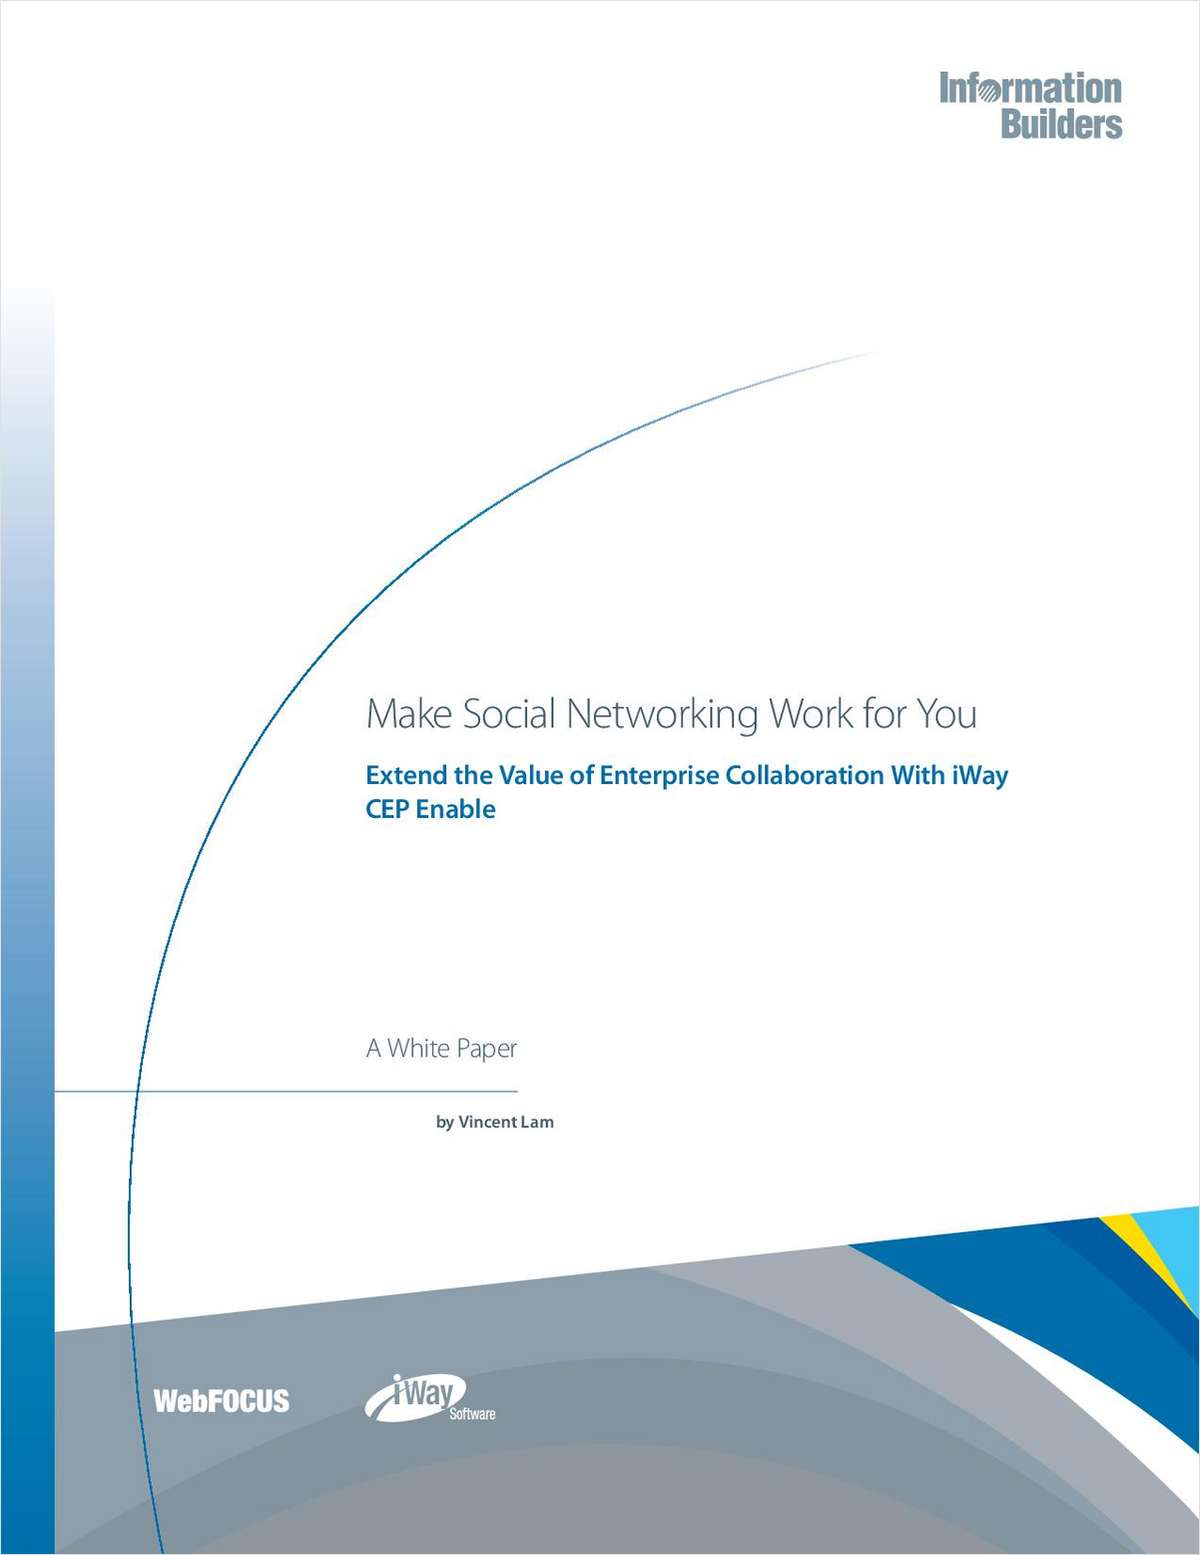 Make social networking work for you free information builders inc white paper